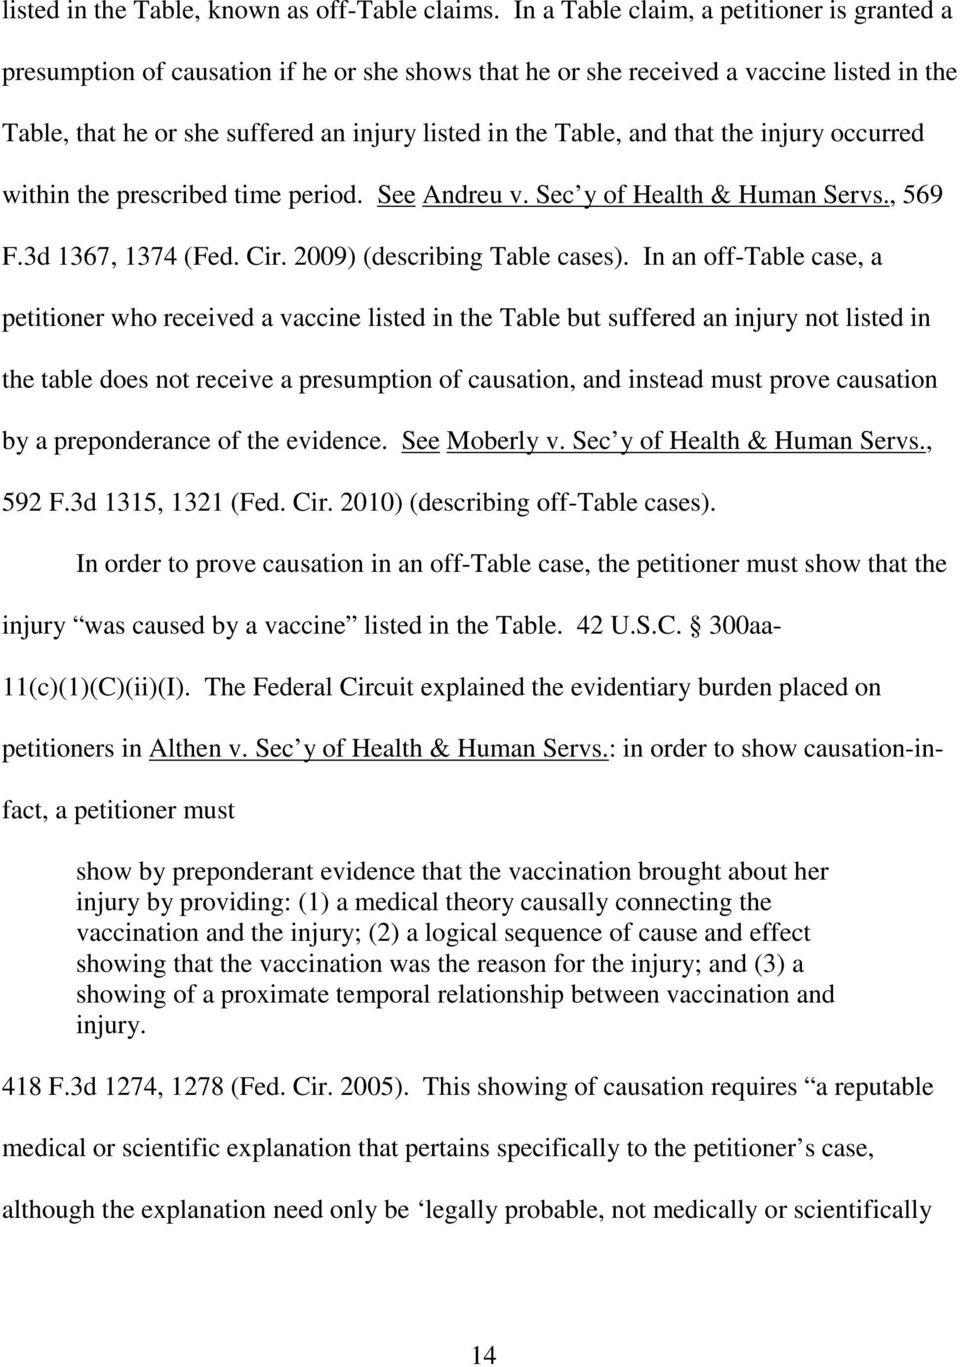 and that the injury occurred within the prescribed time period. See Andreu v. Sec y of Health & Human Servs., 569 F.3d 1367, 1374 (Fed. Cir. 2009 (describing Table cases.